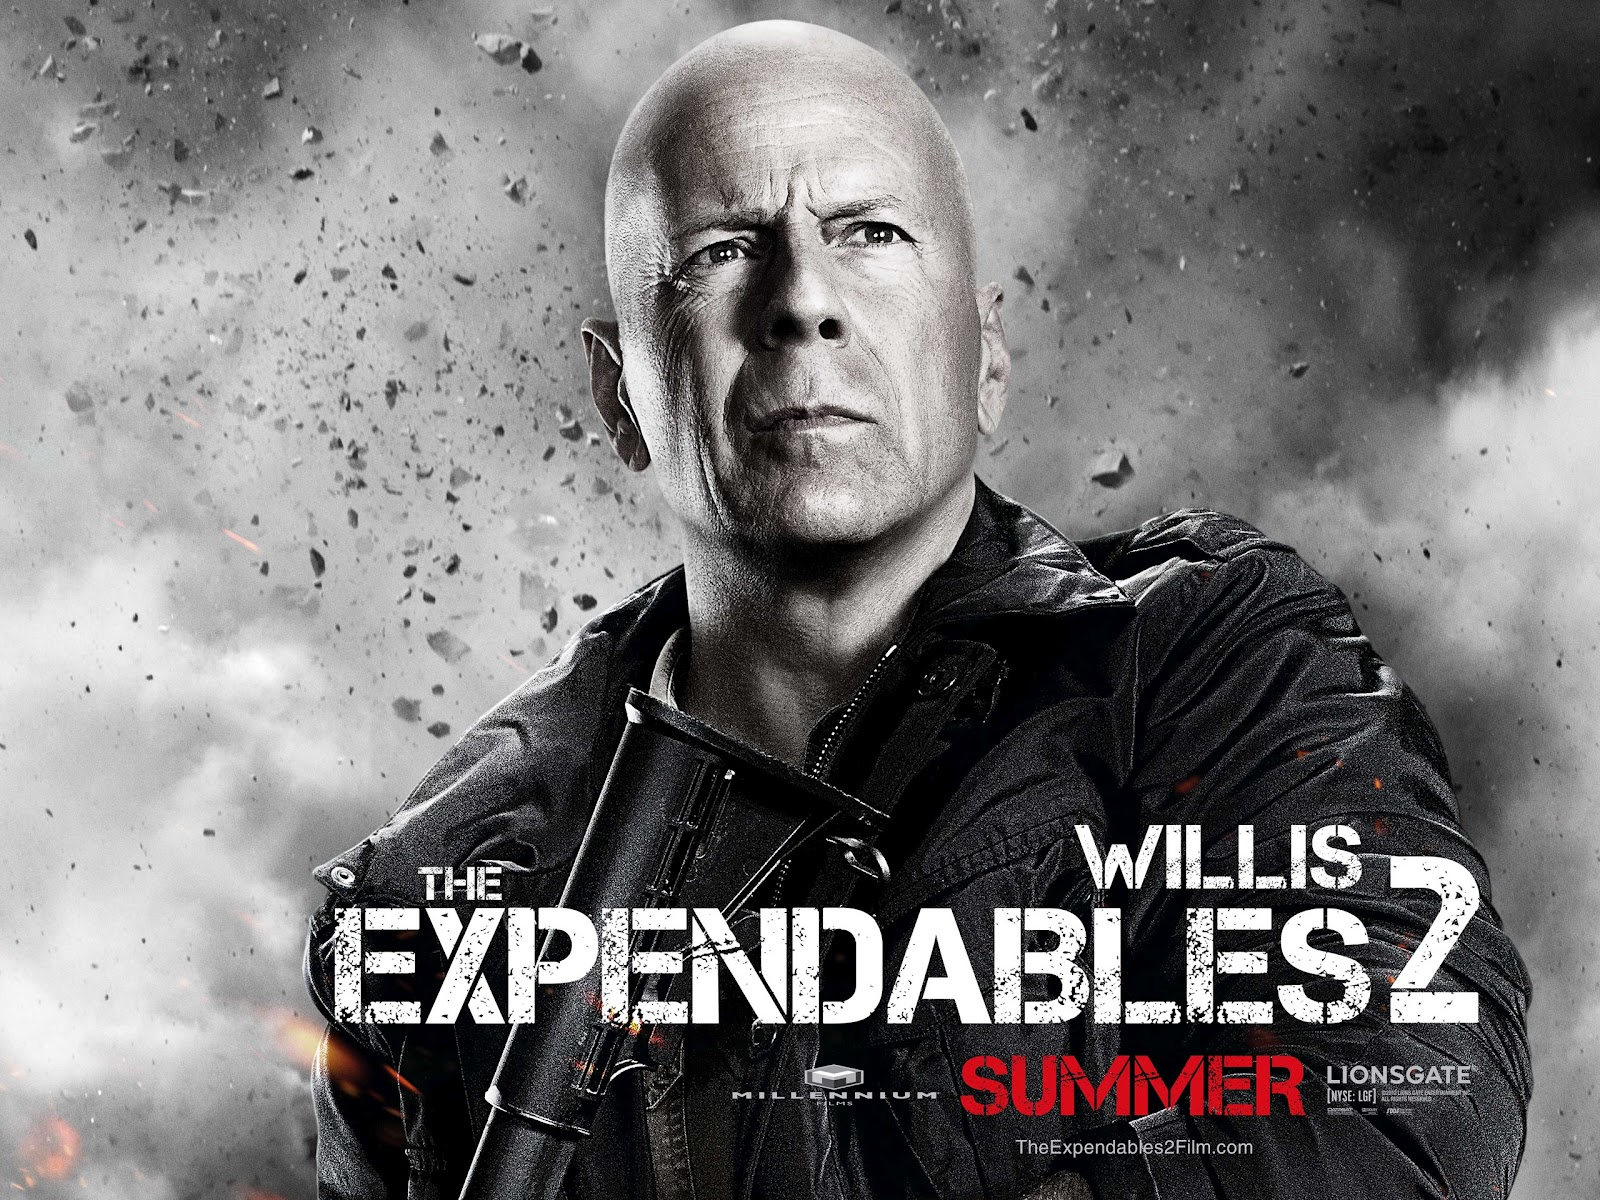 http://1.bp.blogspot.com/-73vzPovTwqg/T8jD6xgQ4GI/AAAAAAAADGU/WnV1XXjPb0Y/s1600/Bruce-Willis-in-The-Expendables-2-hd-wallpapers-1.jpg